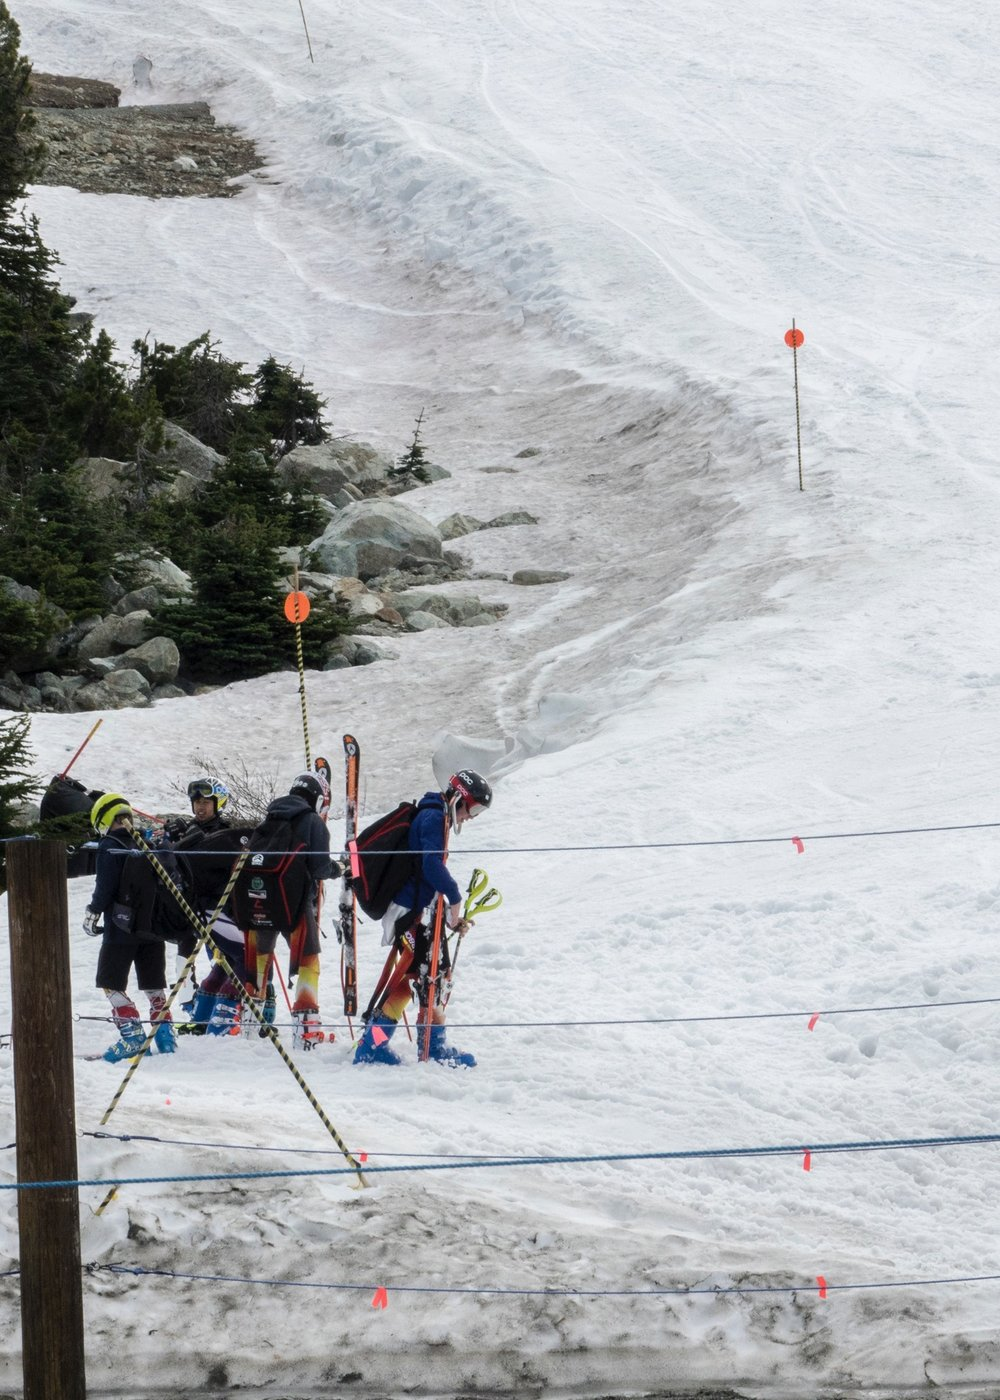 Summer skiers. Need to try that one day...